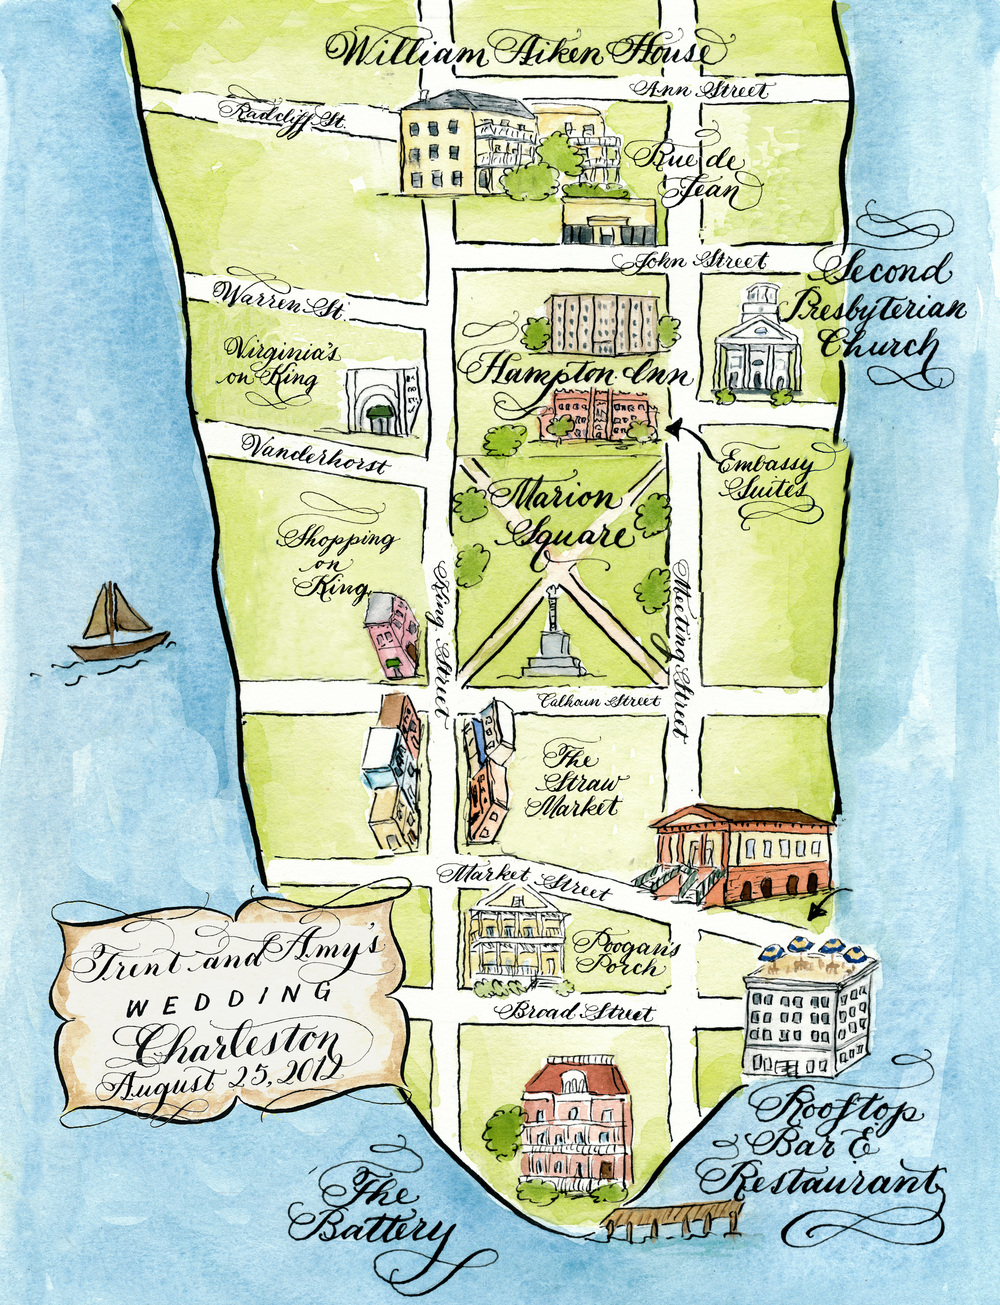 Charleston wedding map by Robyn Love